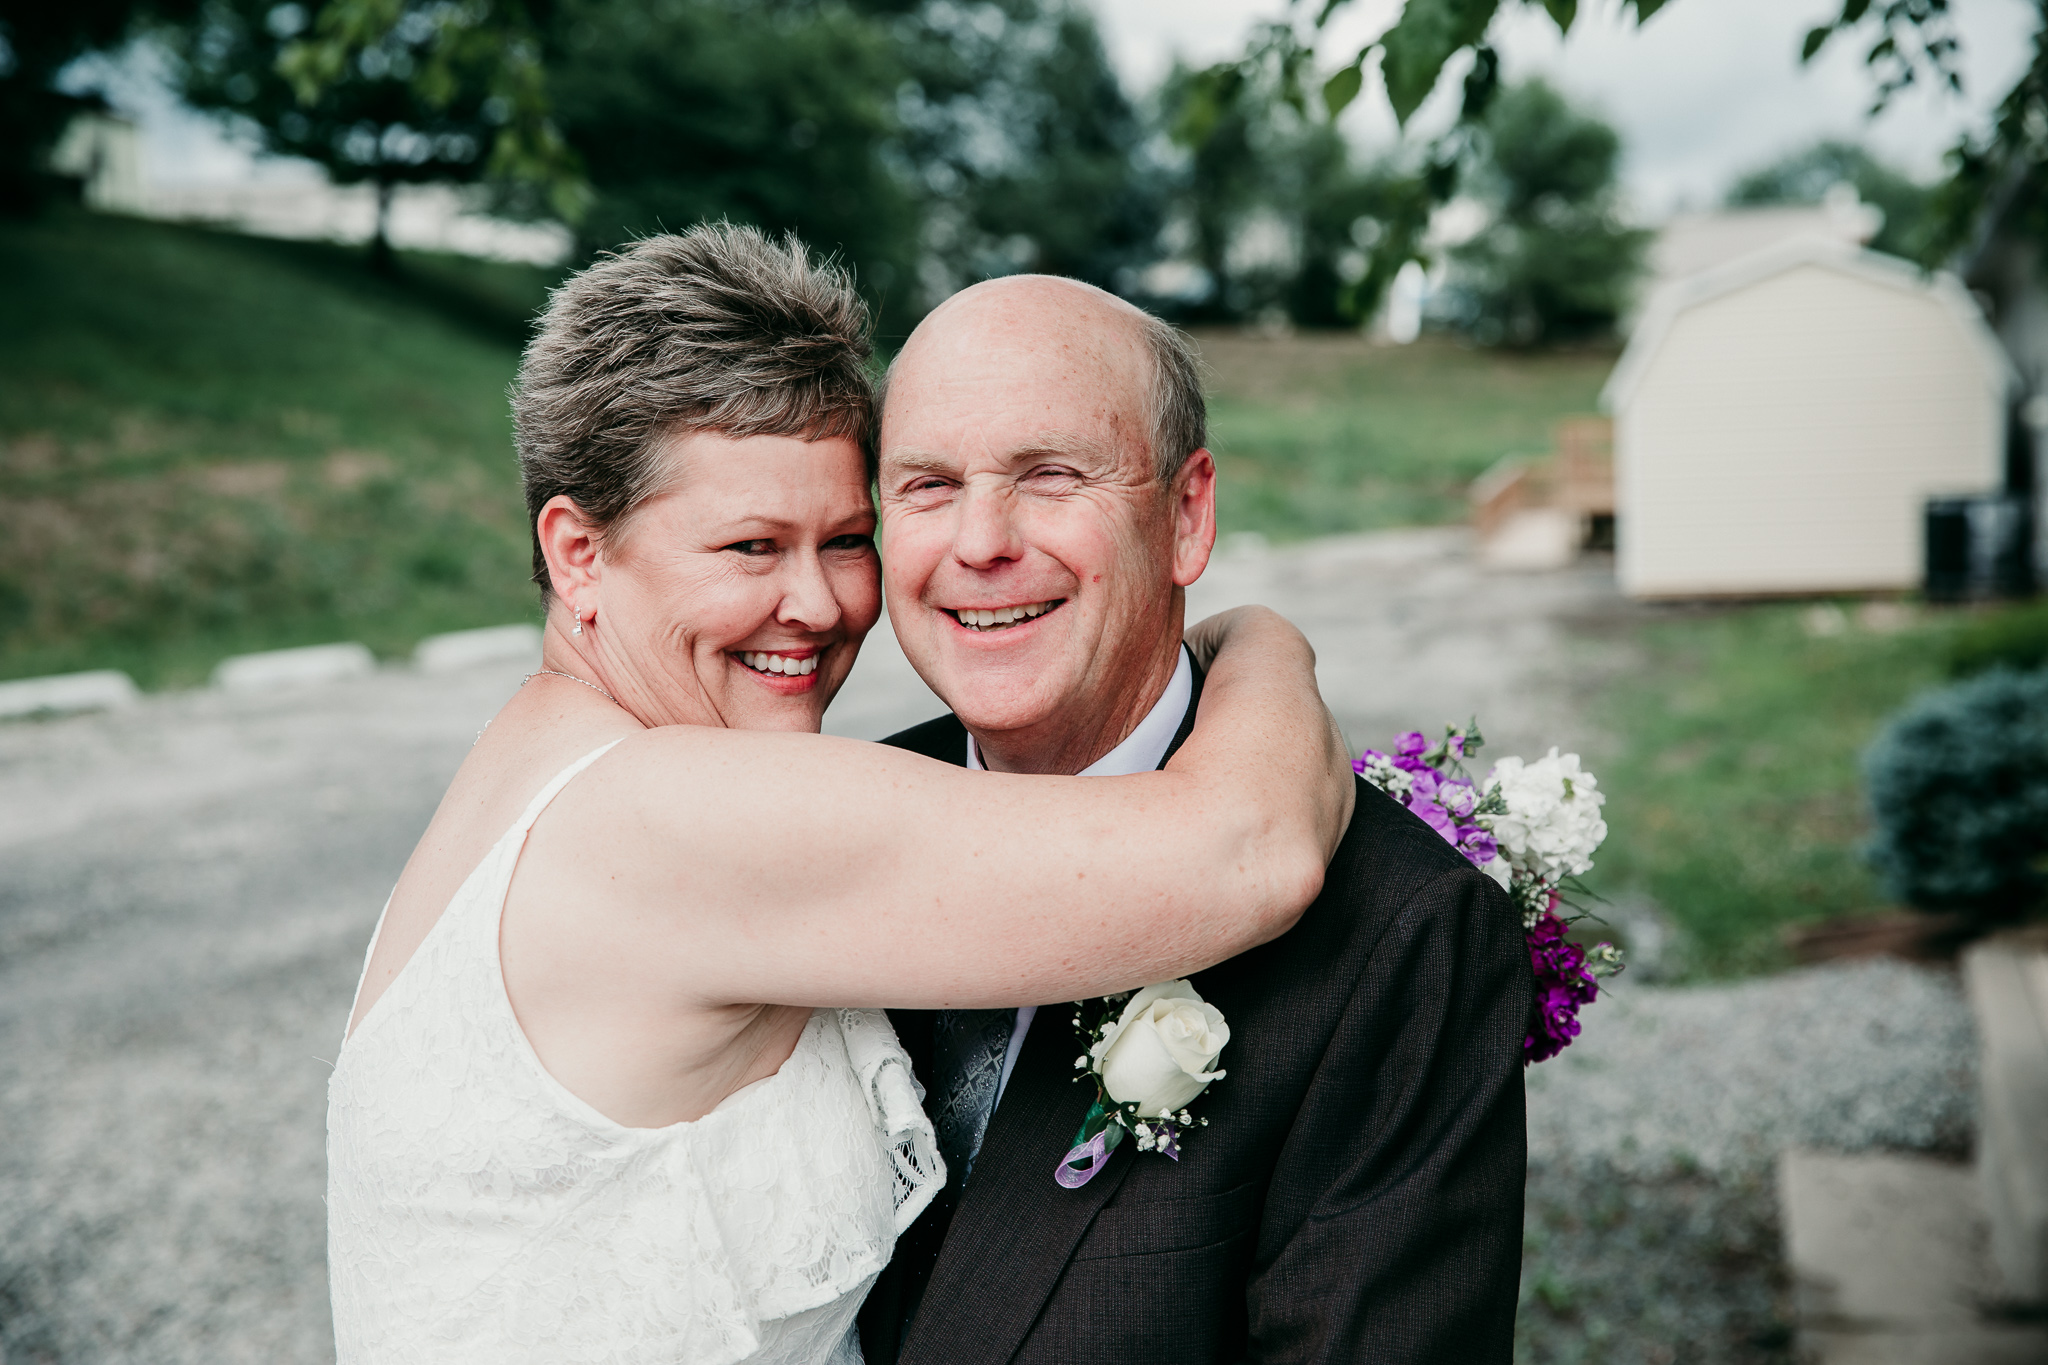 Bride and groom smile and embrace. © Merry Ohler Creative, 2019. Photo by Merry Ohler, who is the best wedding photographer in Kansas City.